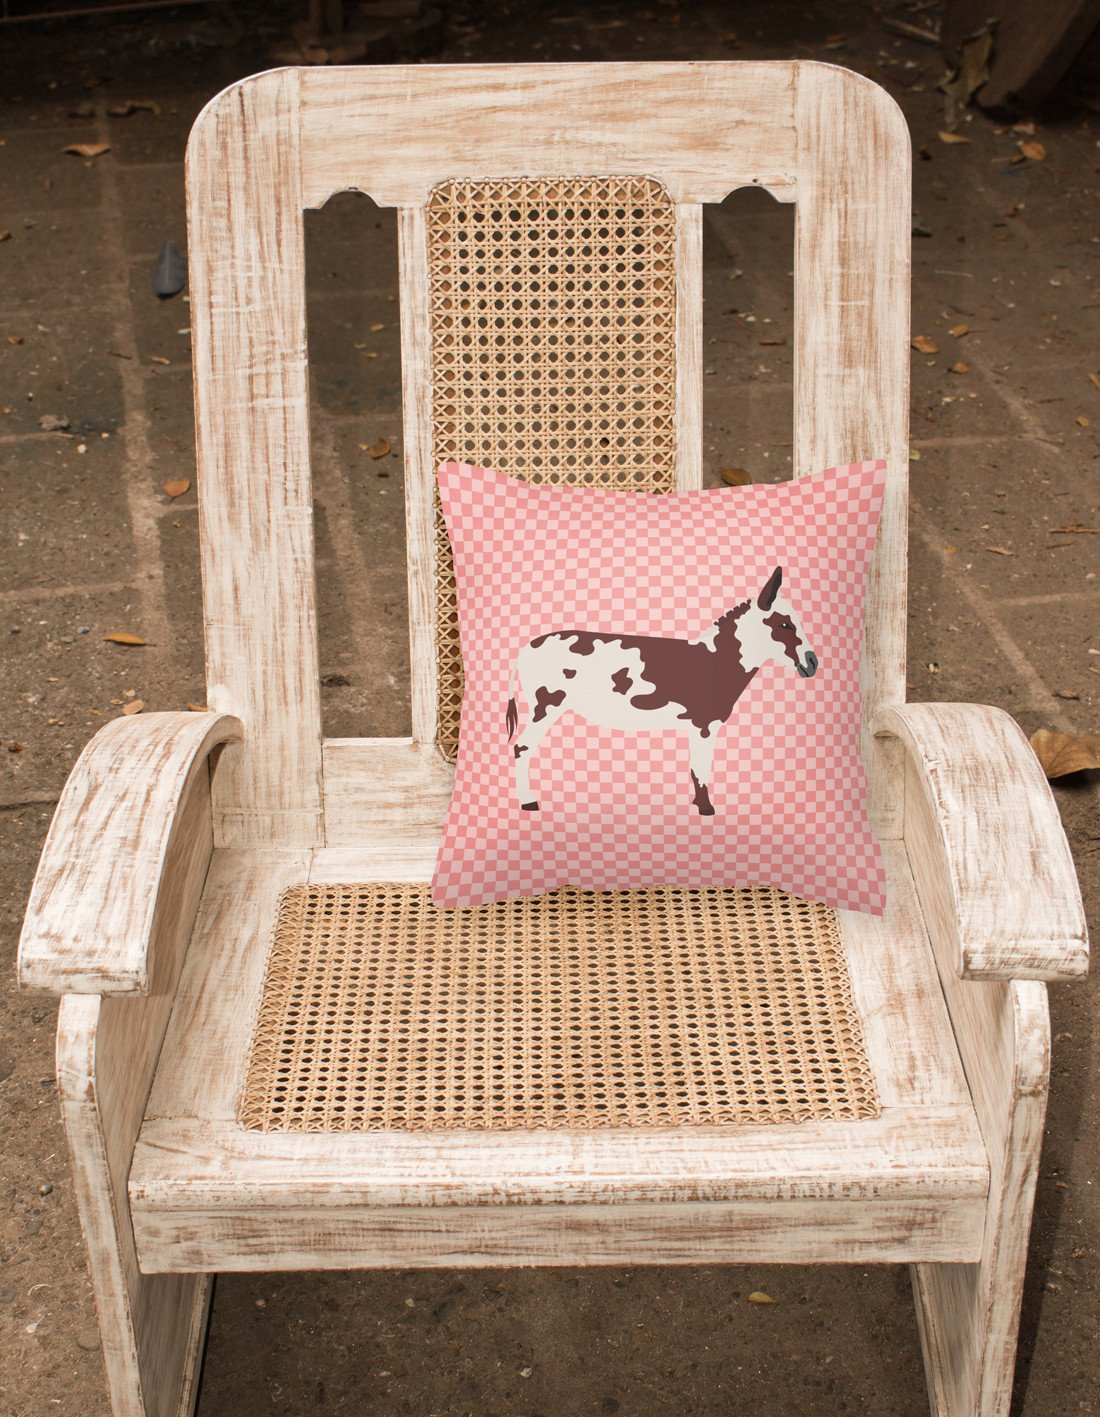 American Spotted Donkey Pink Check Fabric Decorative Pillow BB7851PW1818 by Caroline's Treasures